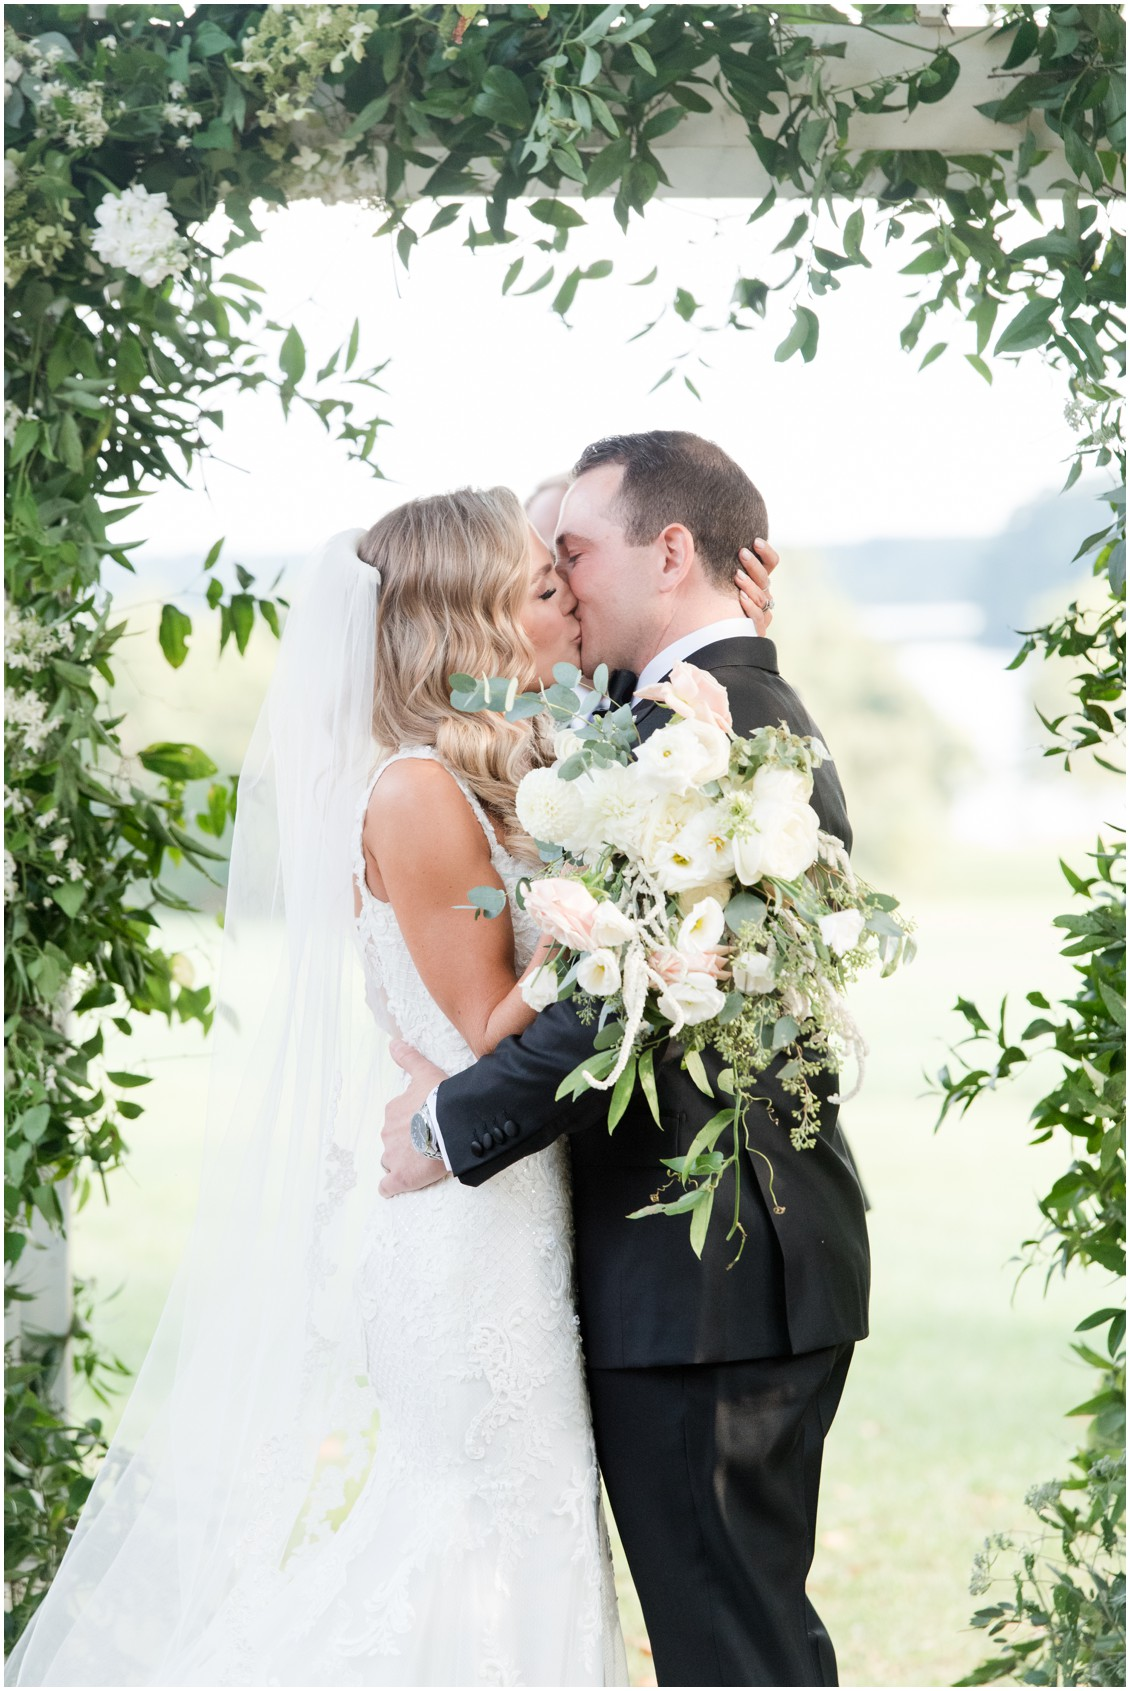 Bride and groom first kiss | Brittland Manor | Rob Korb | My Eastern Shore Wedding